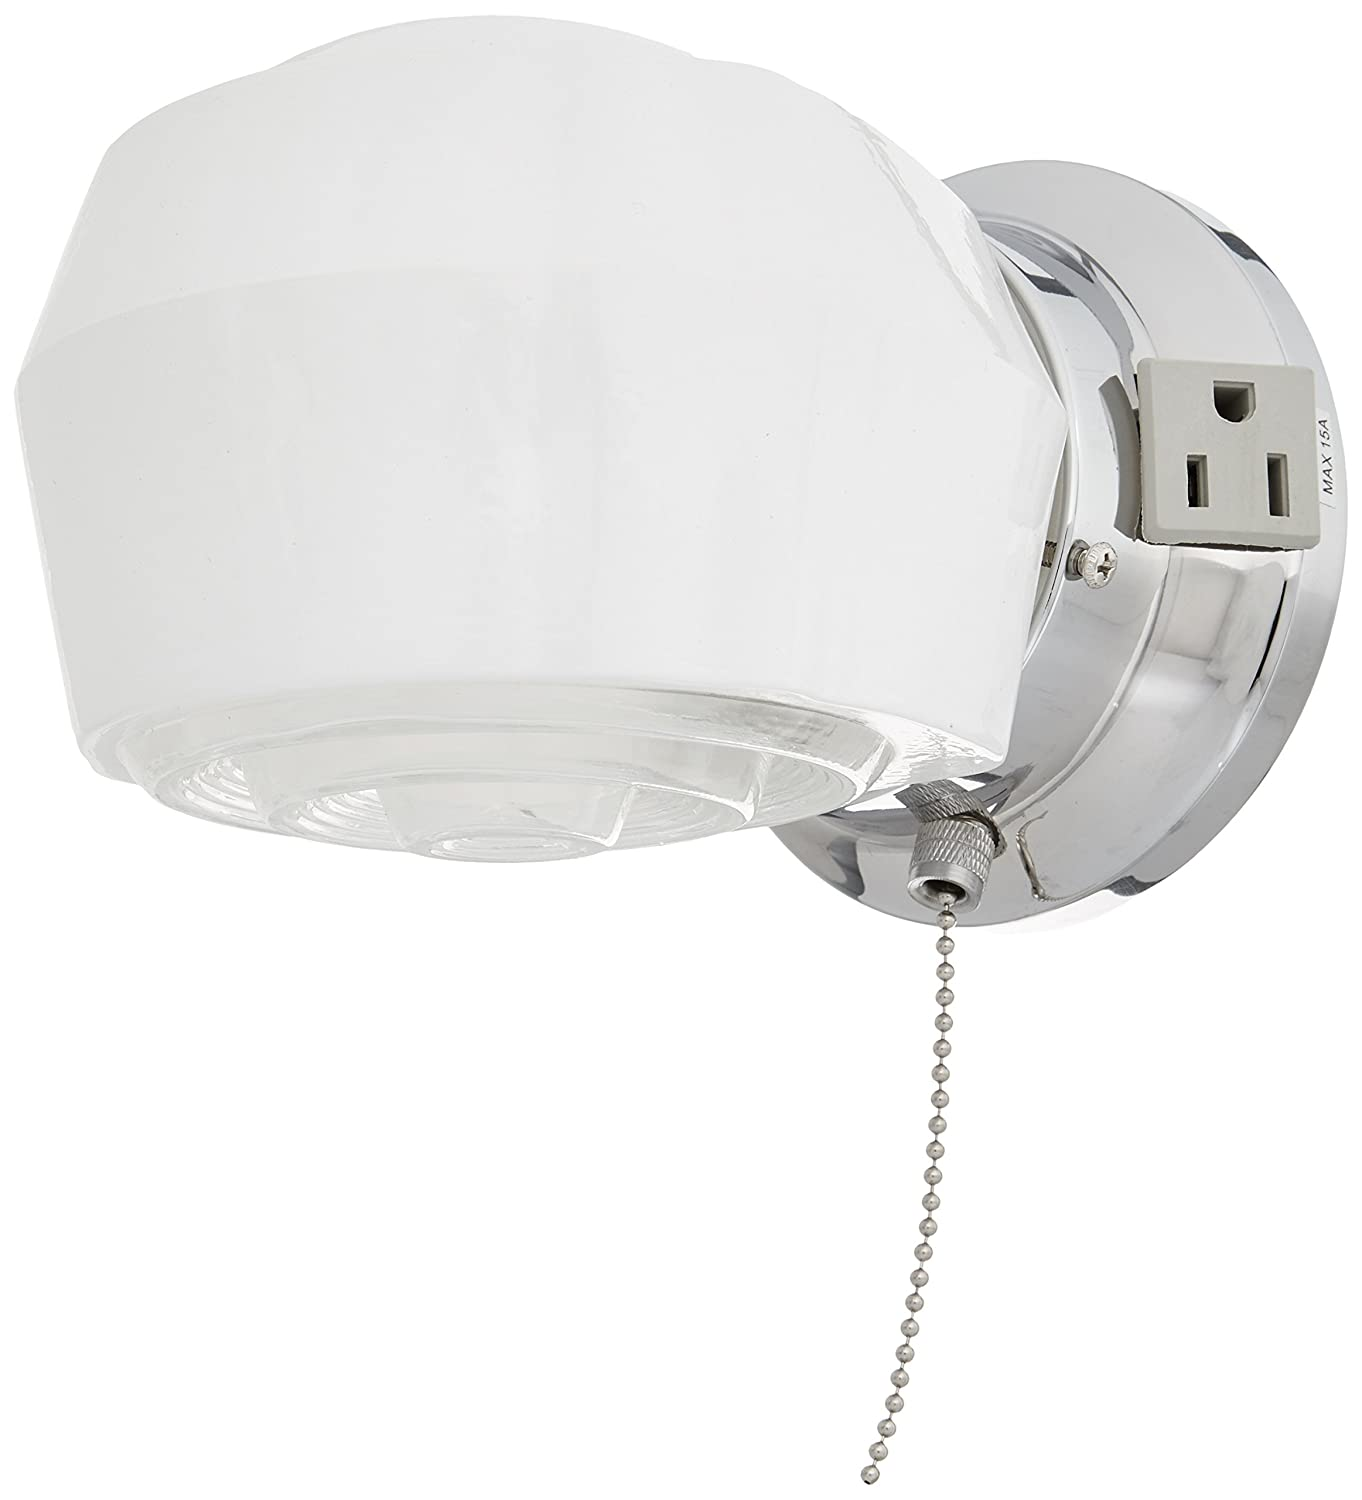 Boston Harbor W39CH01LS-34473L 6890727 Dimmable Wall Light Fixture With Pull Chain, (1) 60/13 W, Medium, A19/Cfl Lamp, Chrome